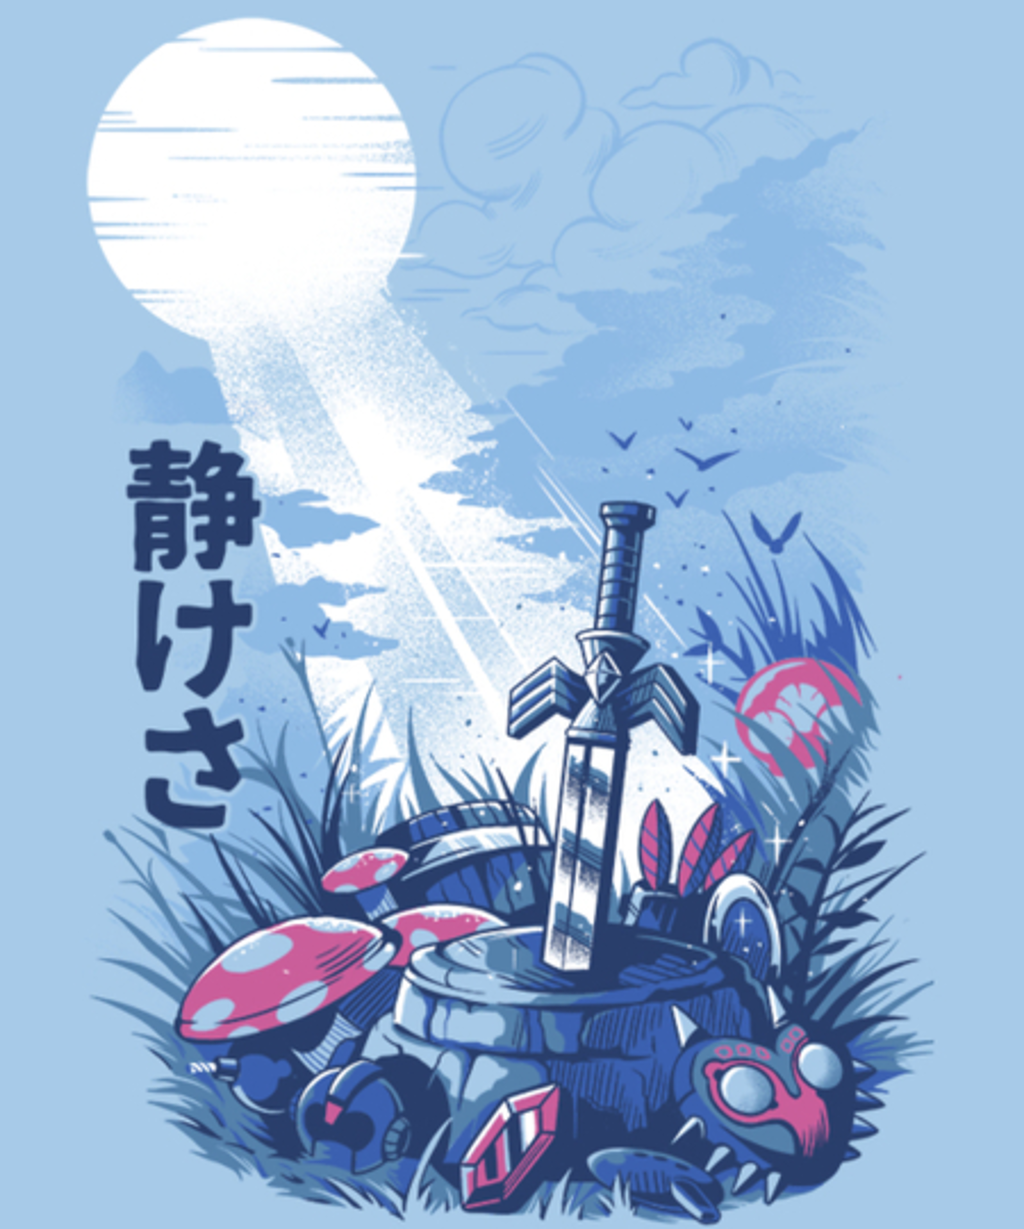 Qwertee: Games on the woods